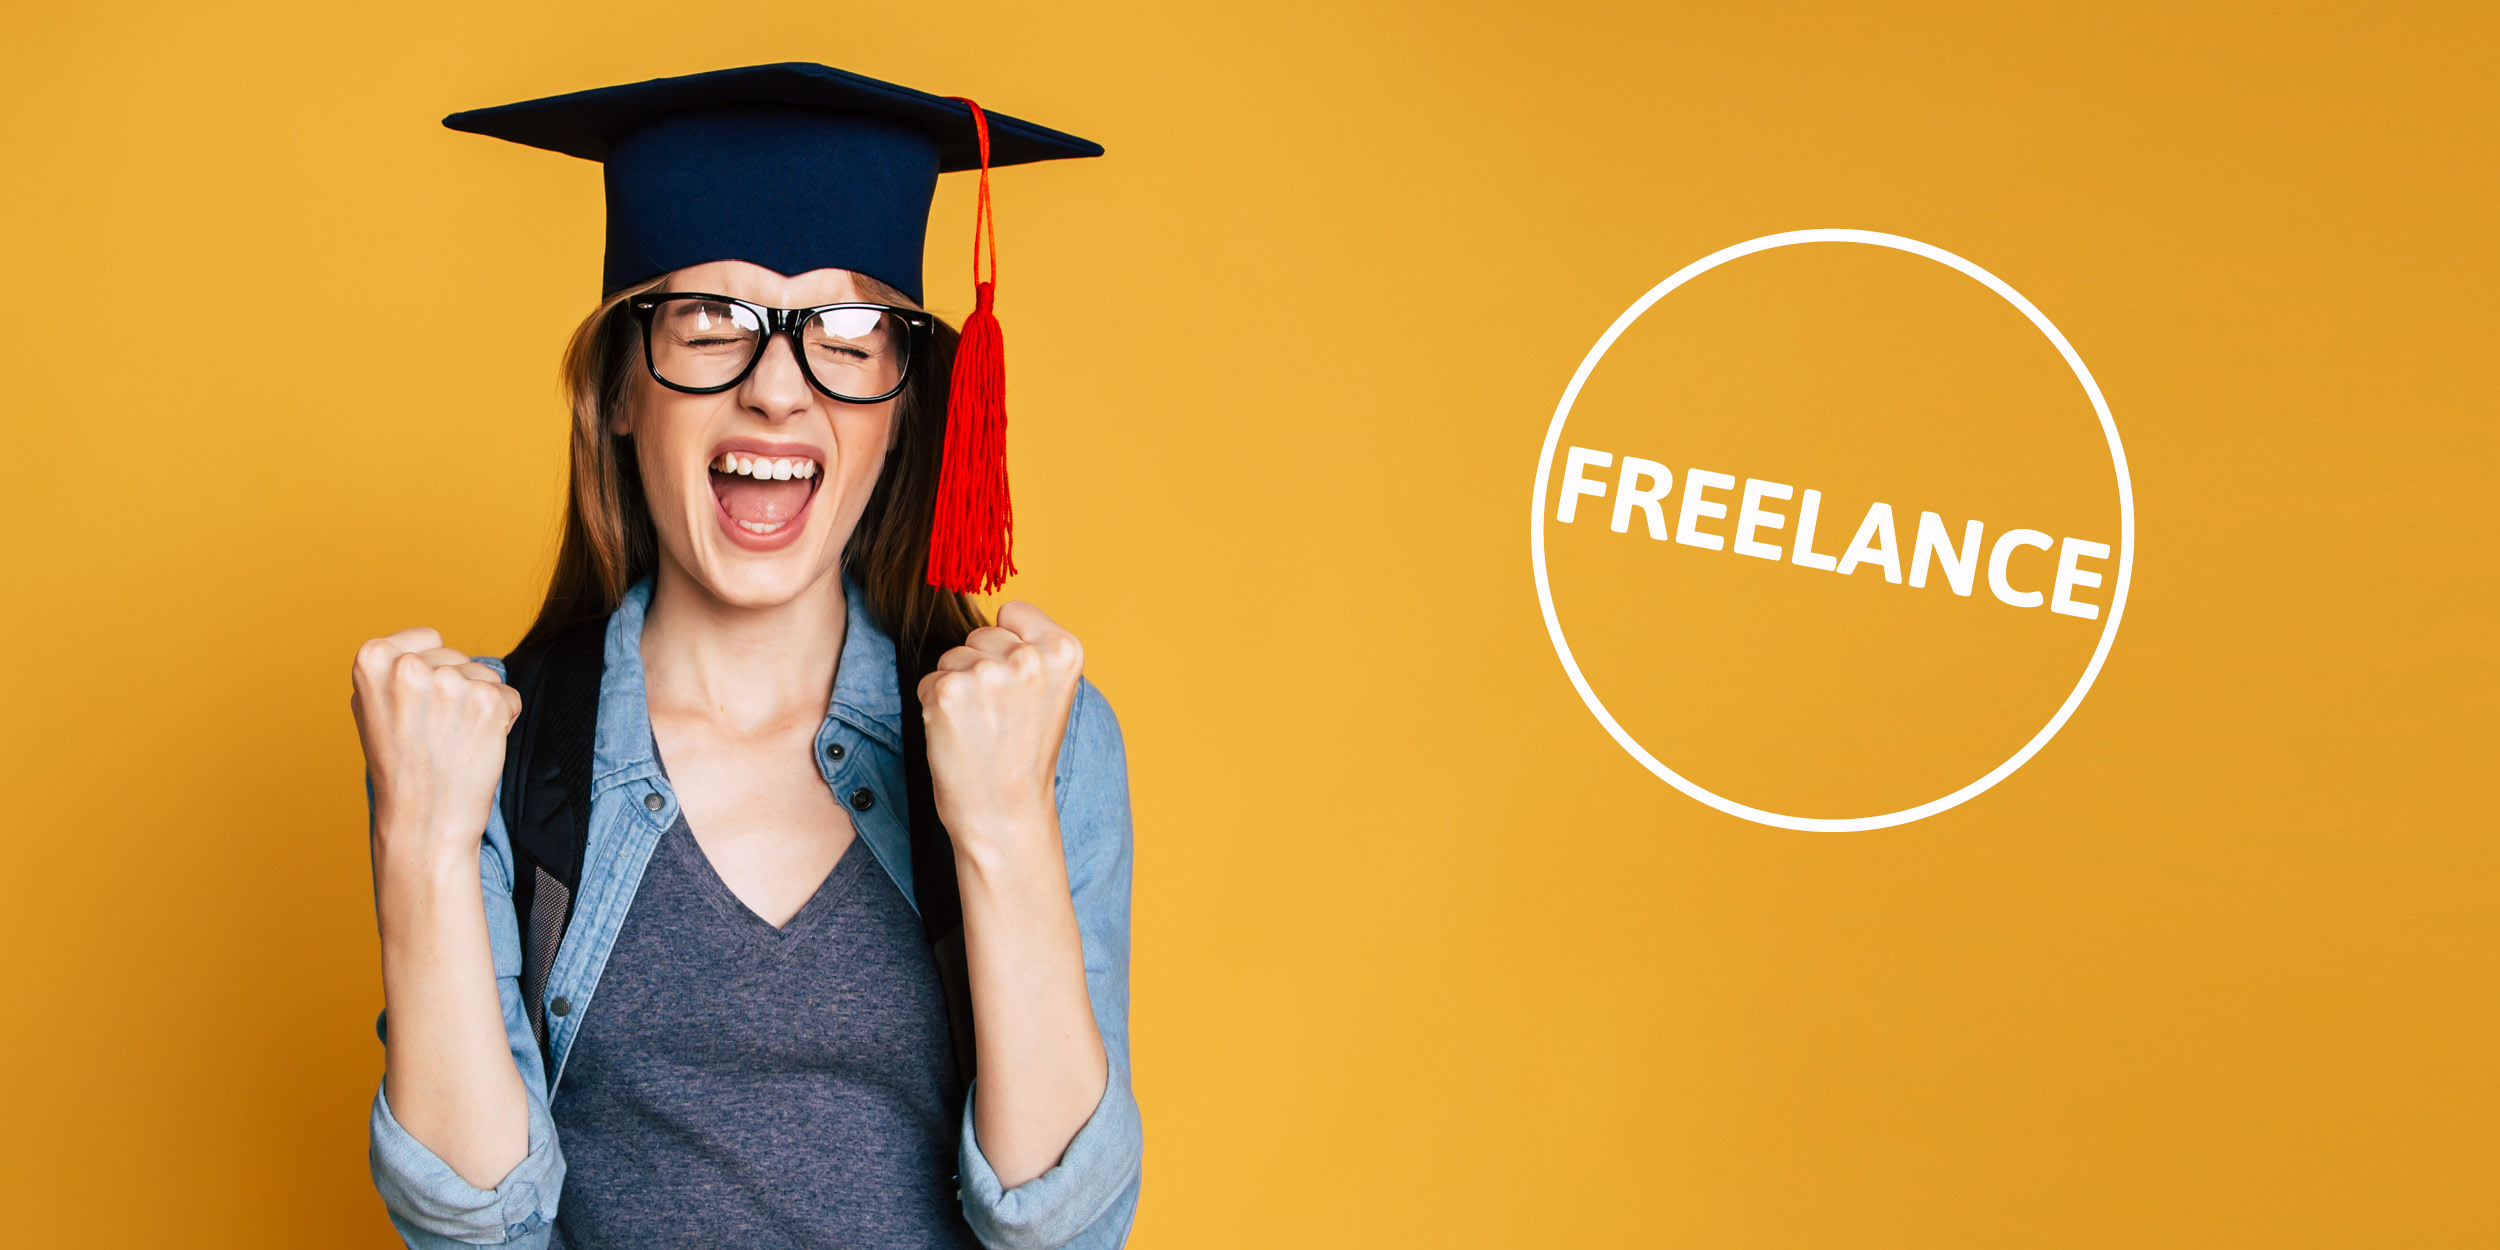 Graduate scheme for freelance translators